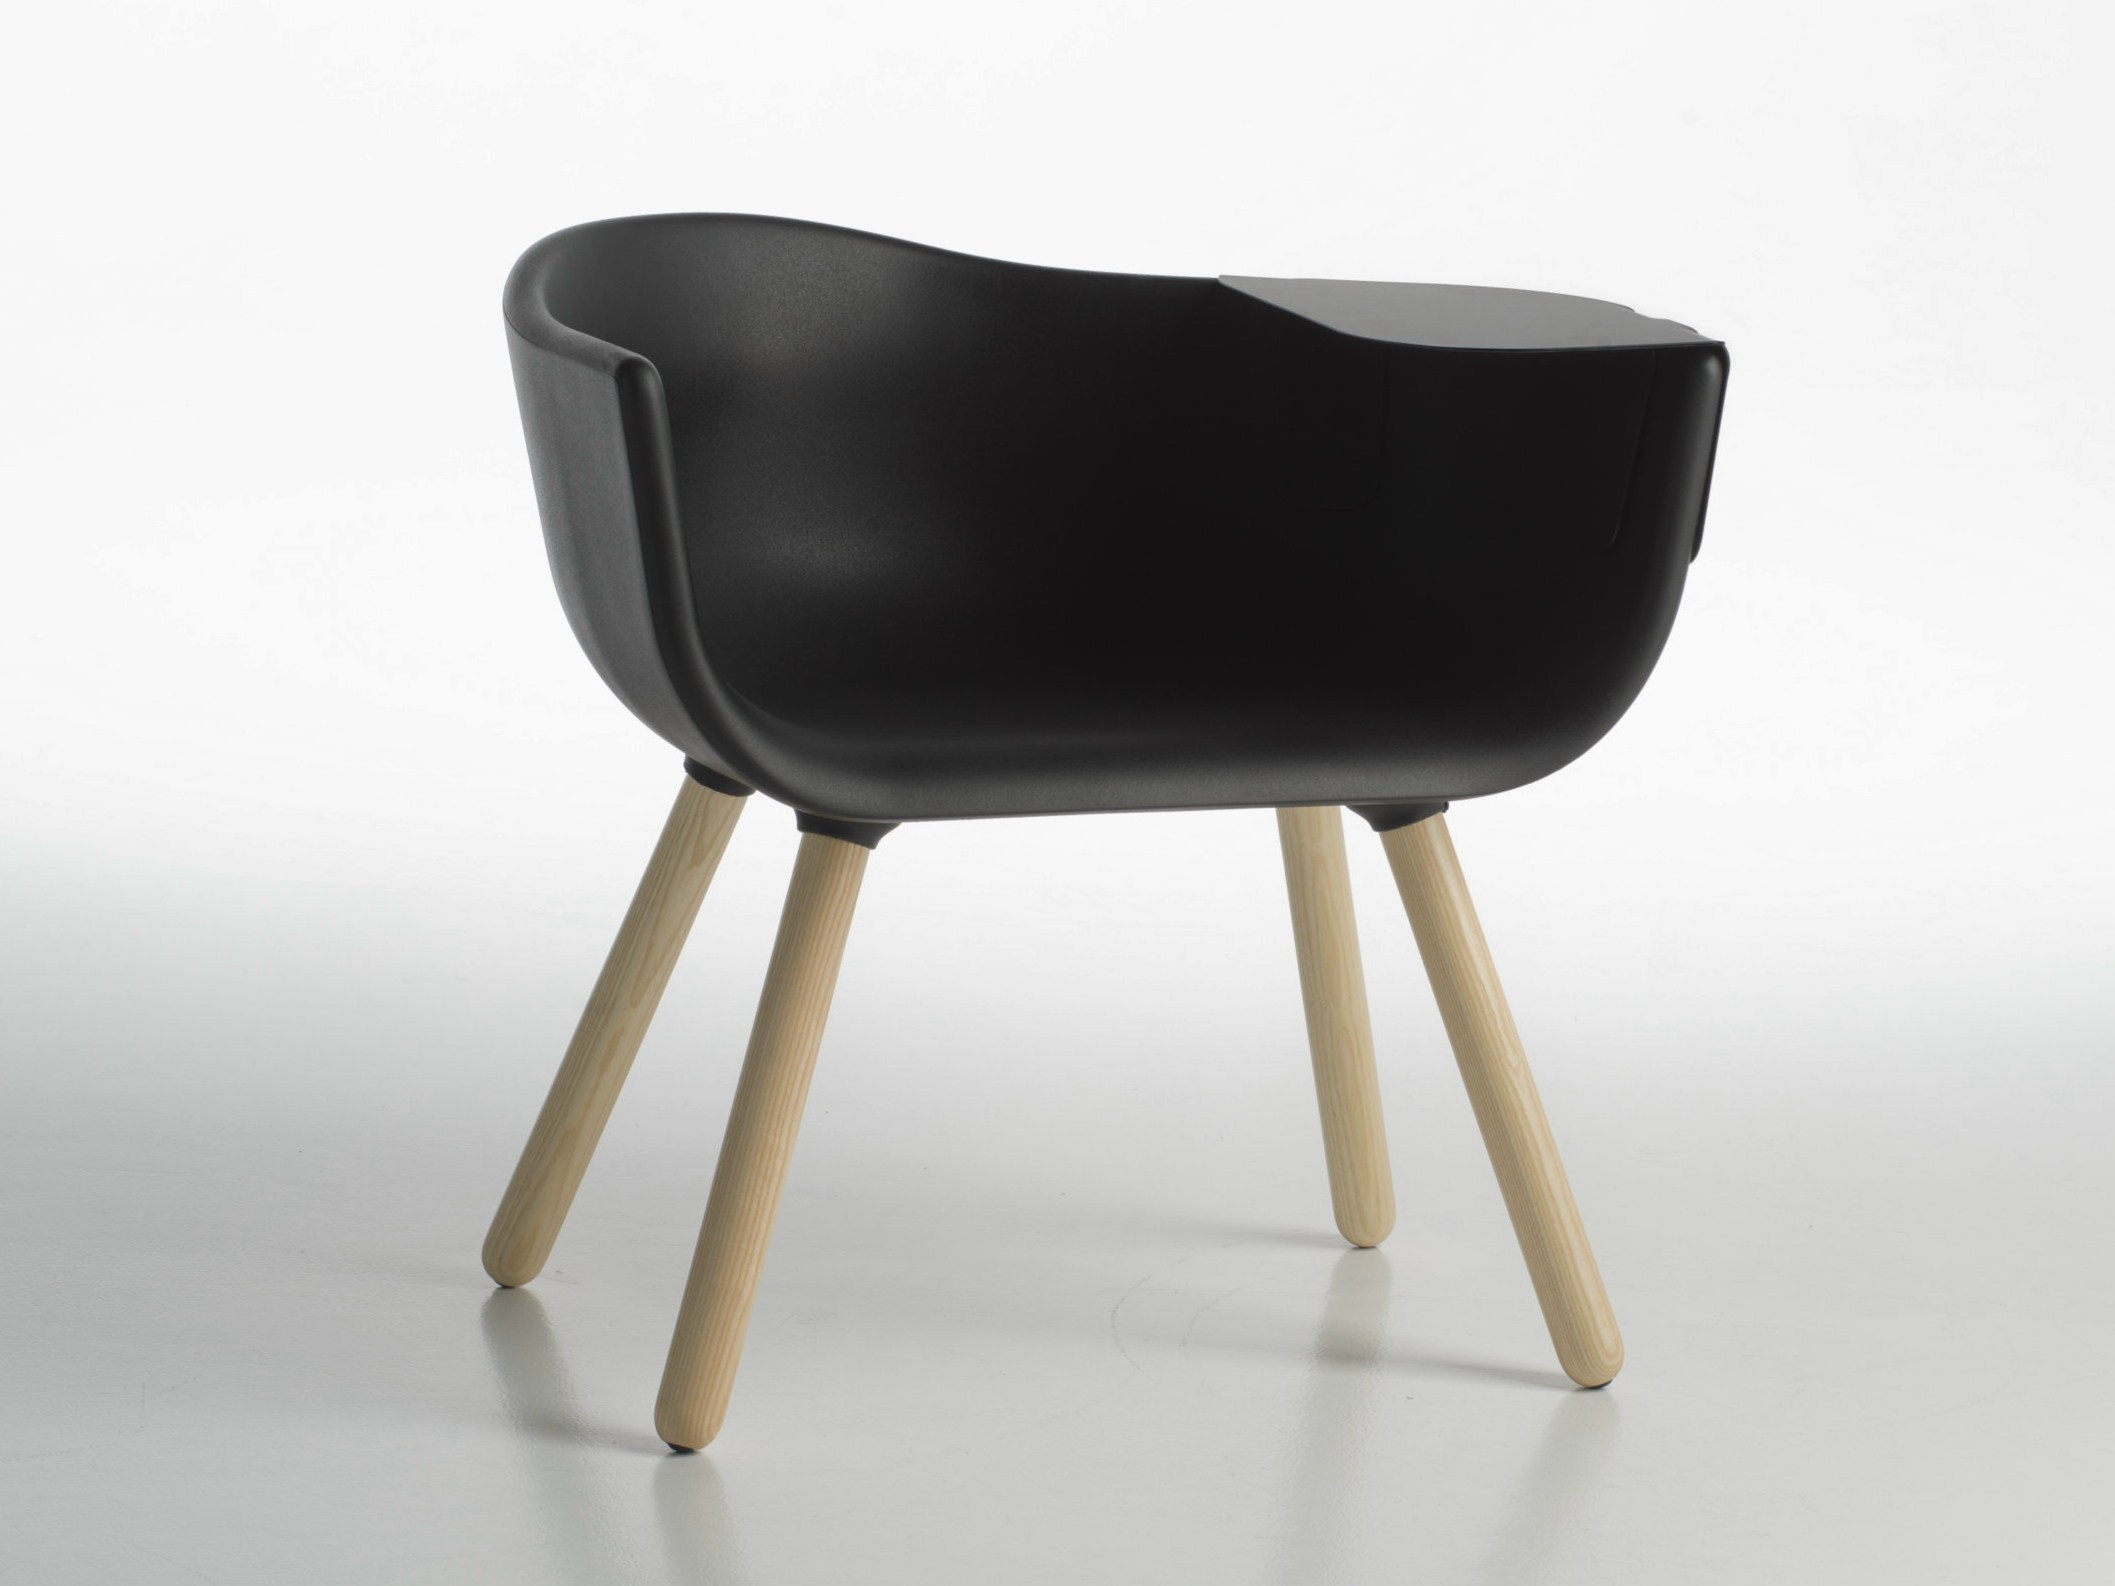 Tulip Large Chair by Kazuko Okamoto for Chairs & More